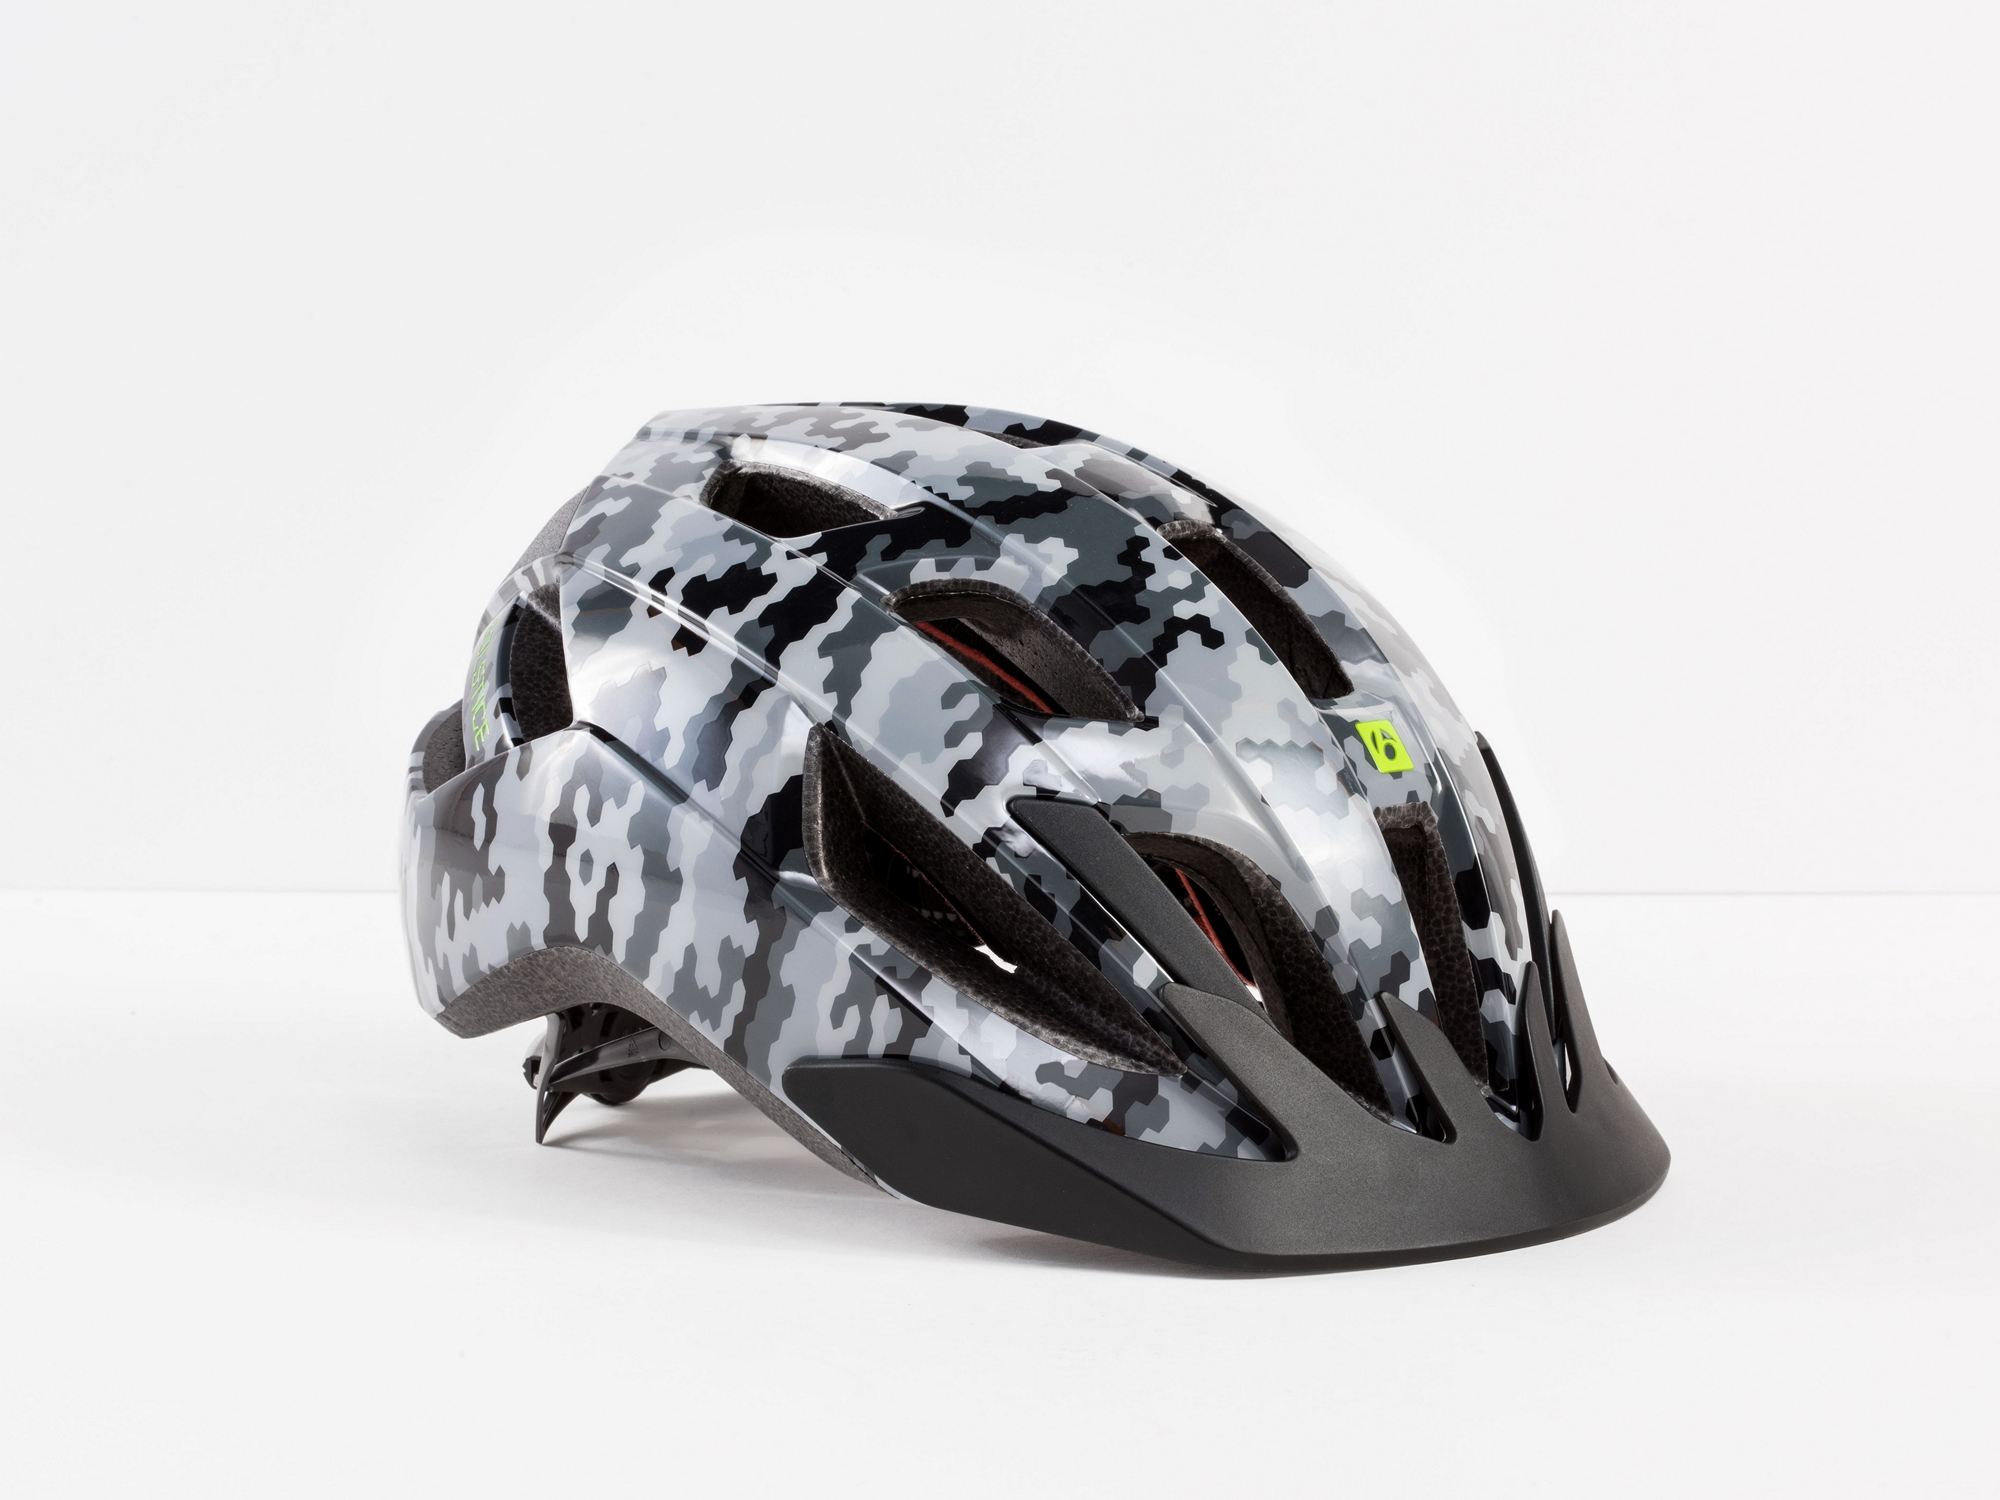 Bontrager Solstice Youth Bike Helmet